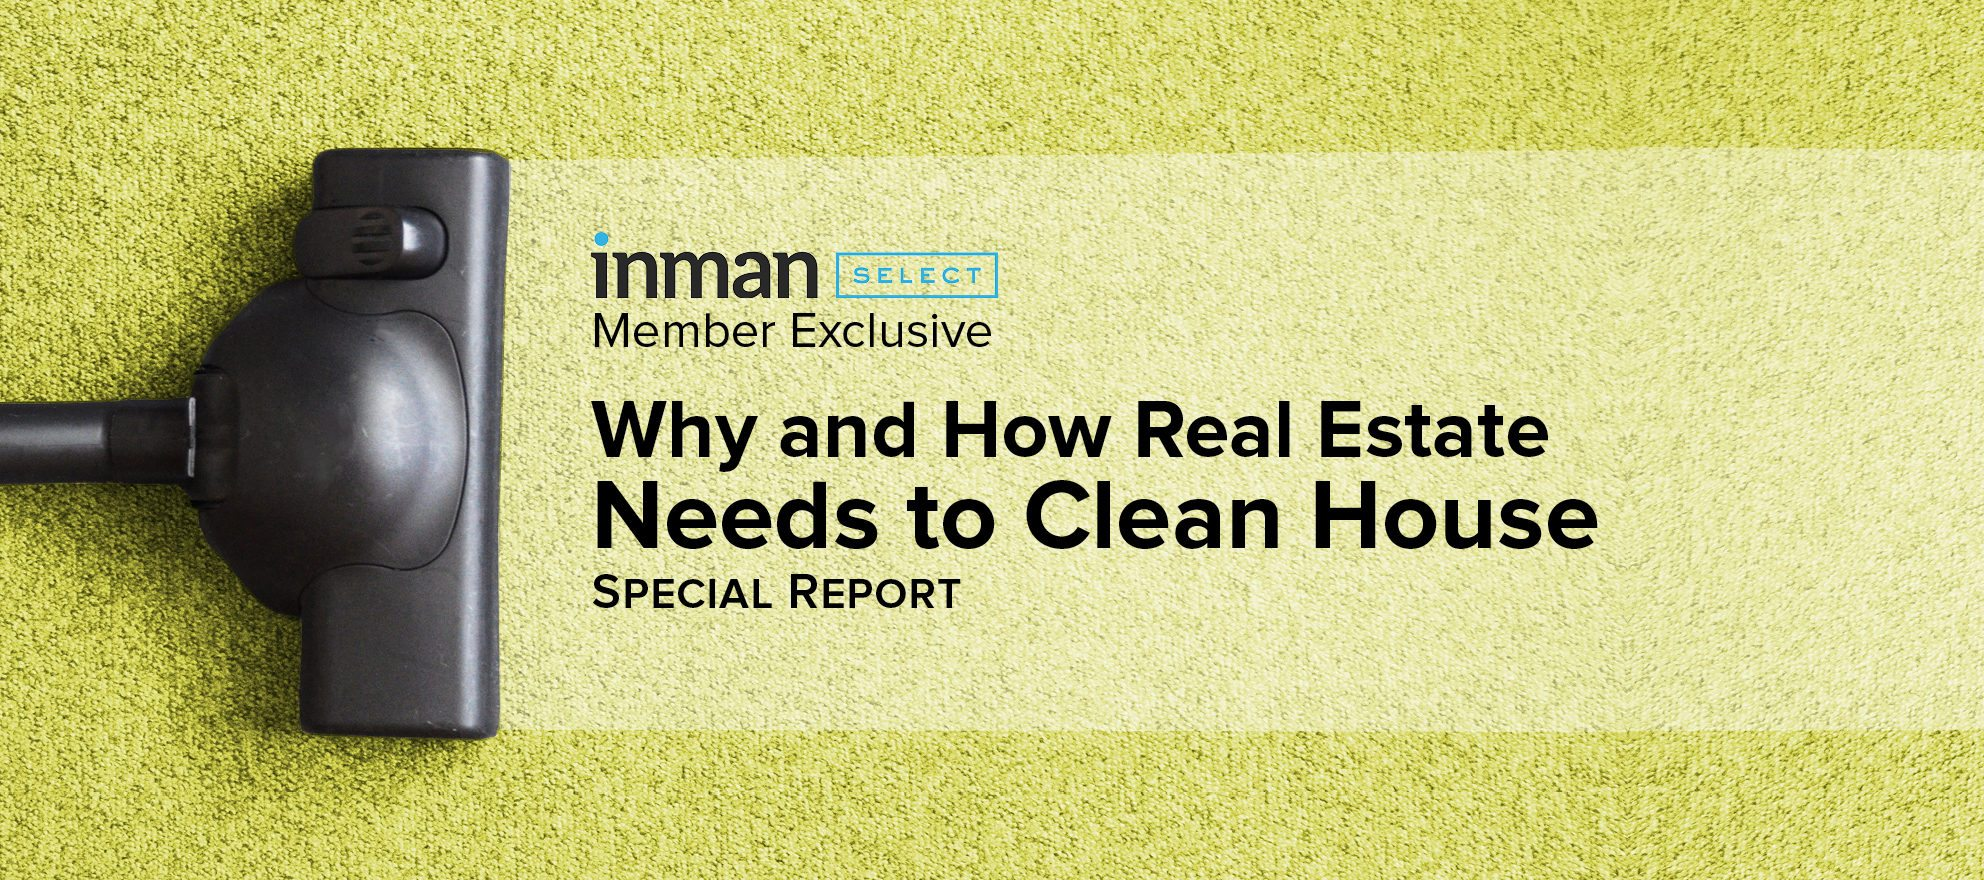 Special report: Why and how real estate needs to clean house